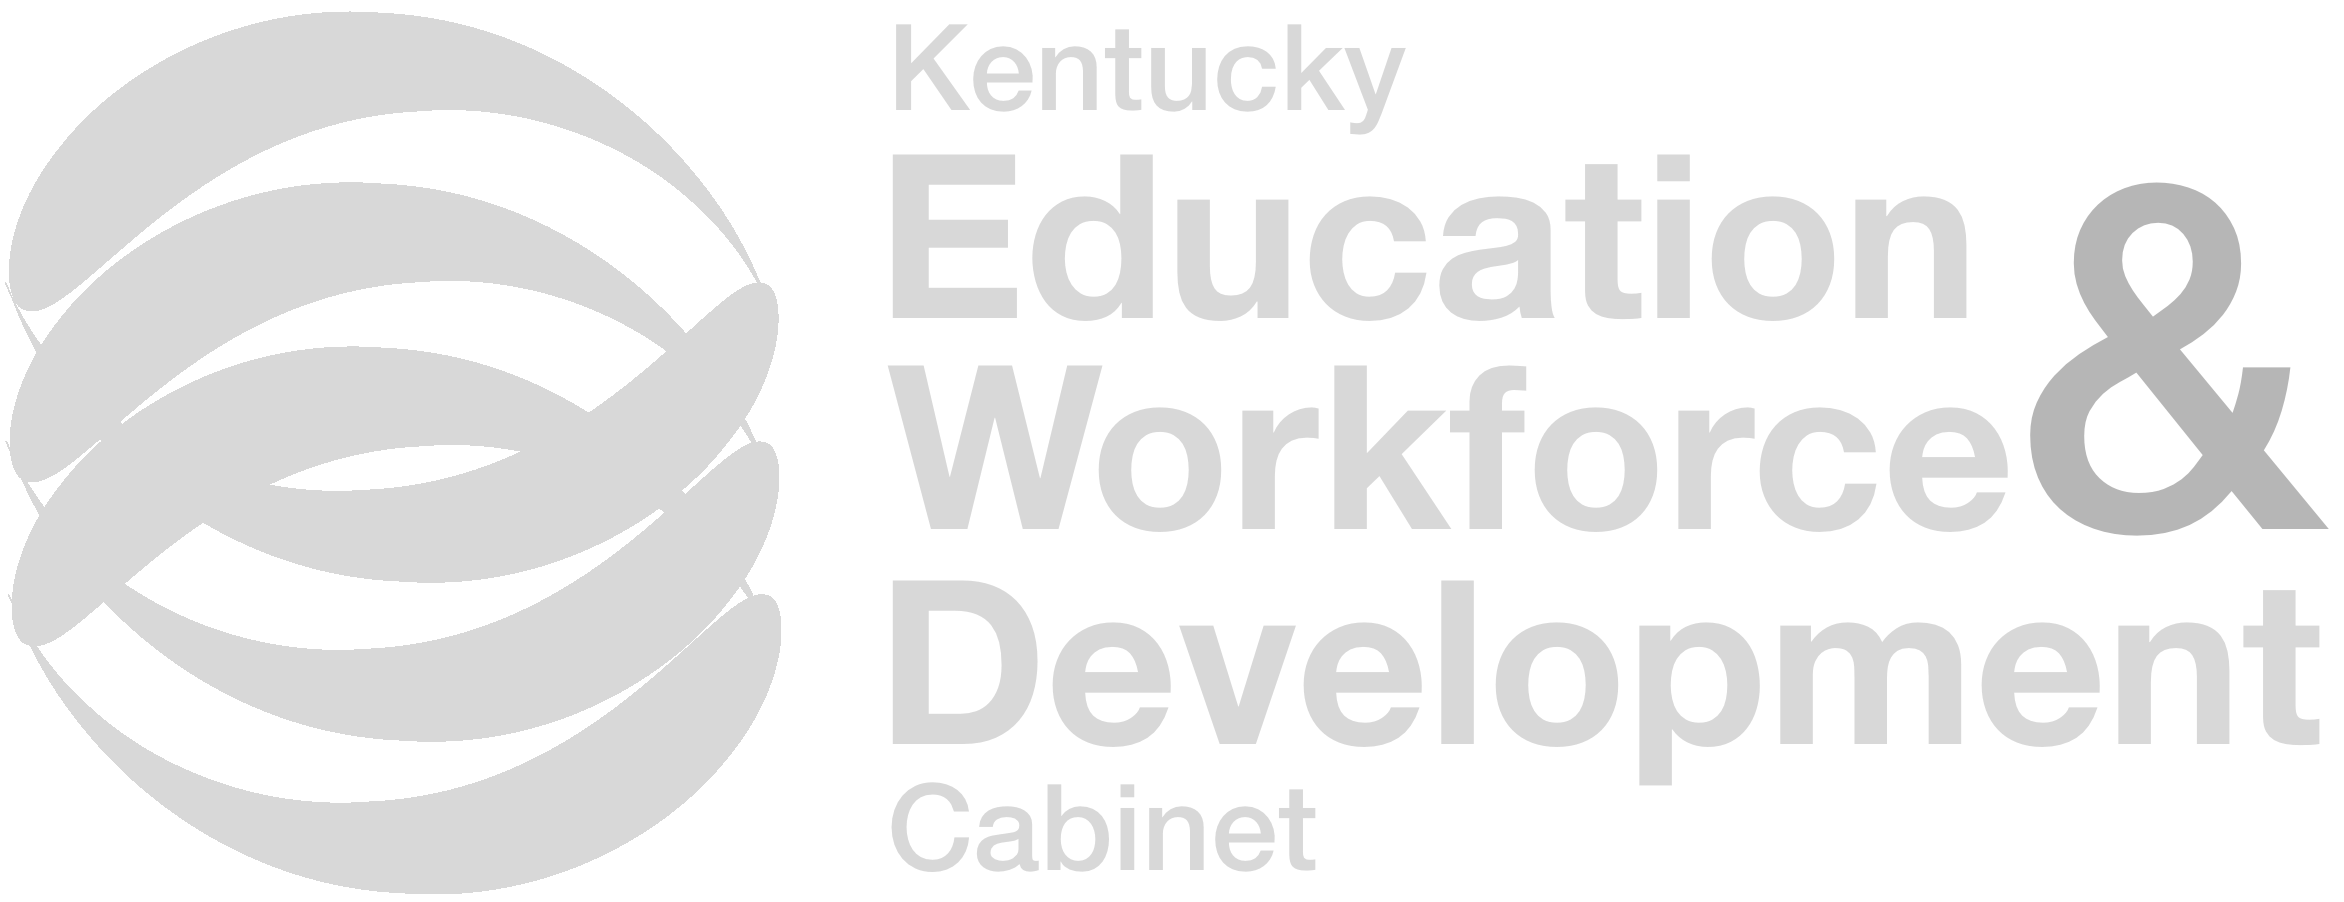 Logo for Kentucky Education Cabinet.